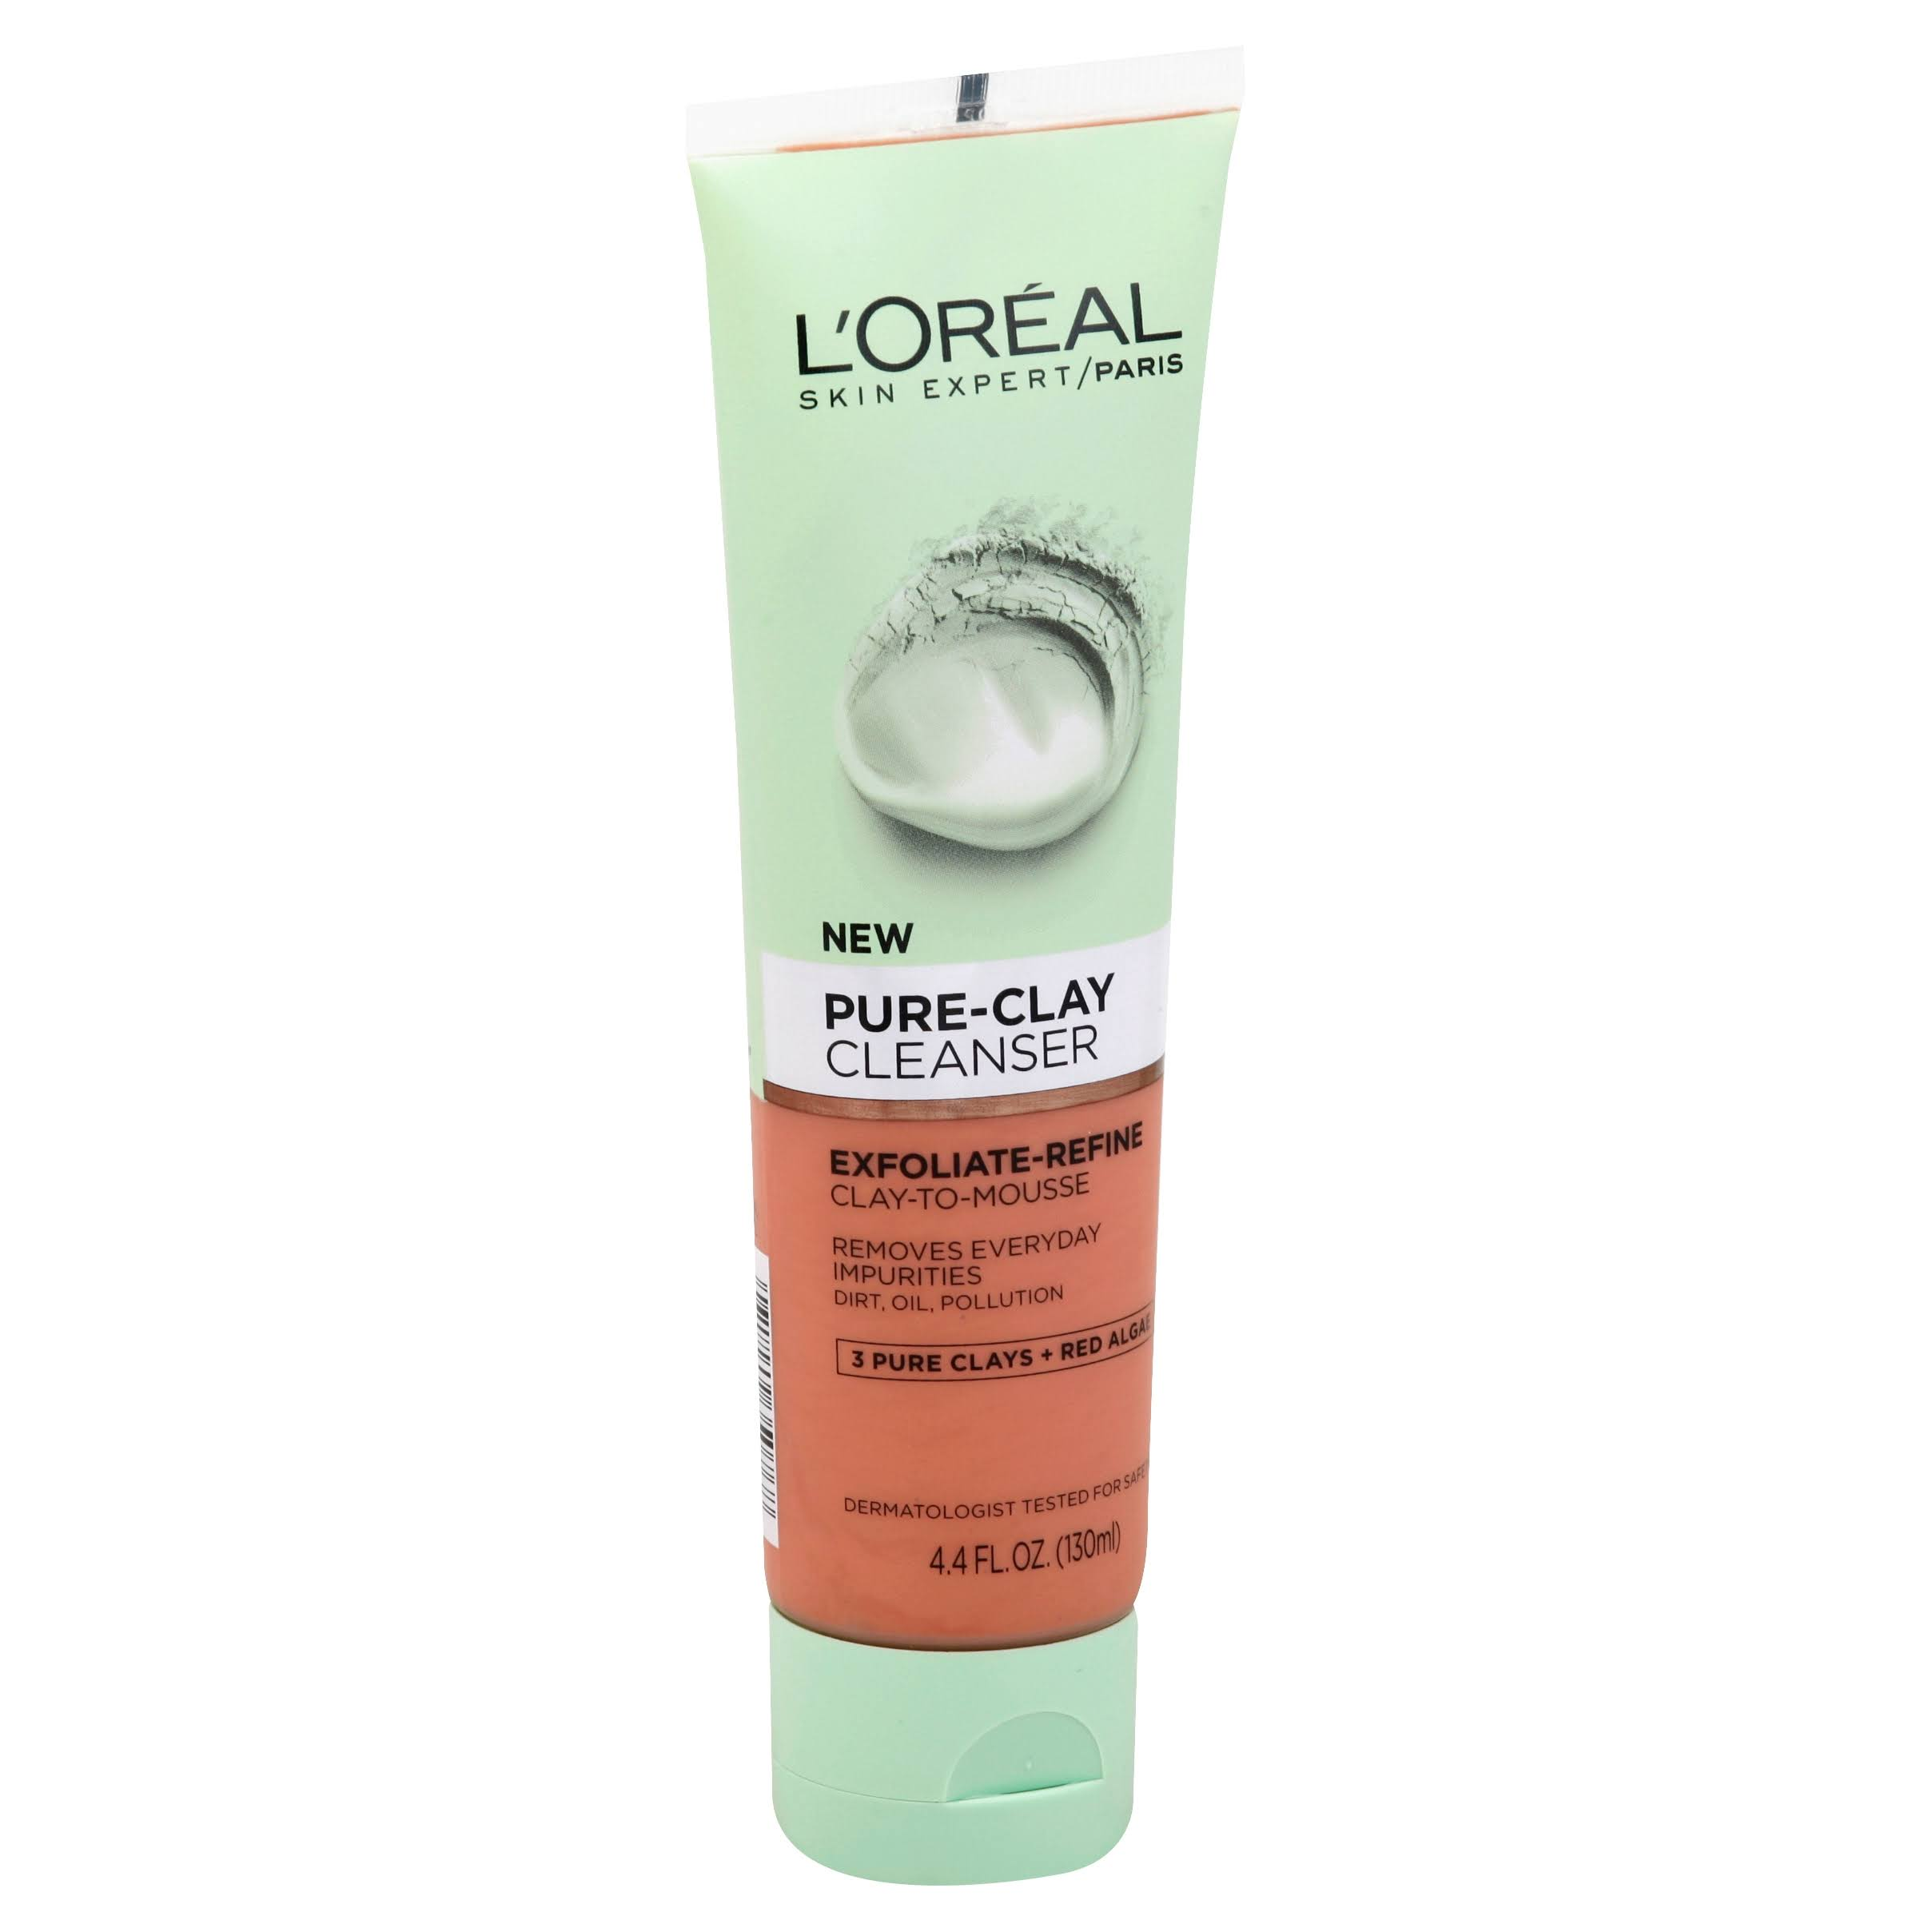 L'Oréal Paris Skin Expert Pure-Clay Cleanser - 4.4oz